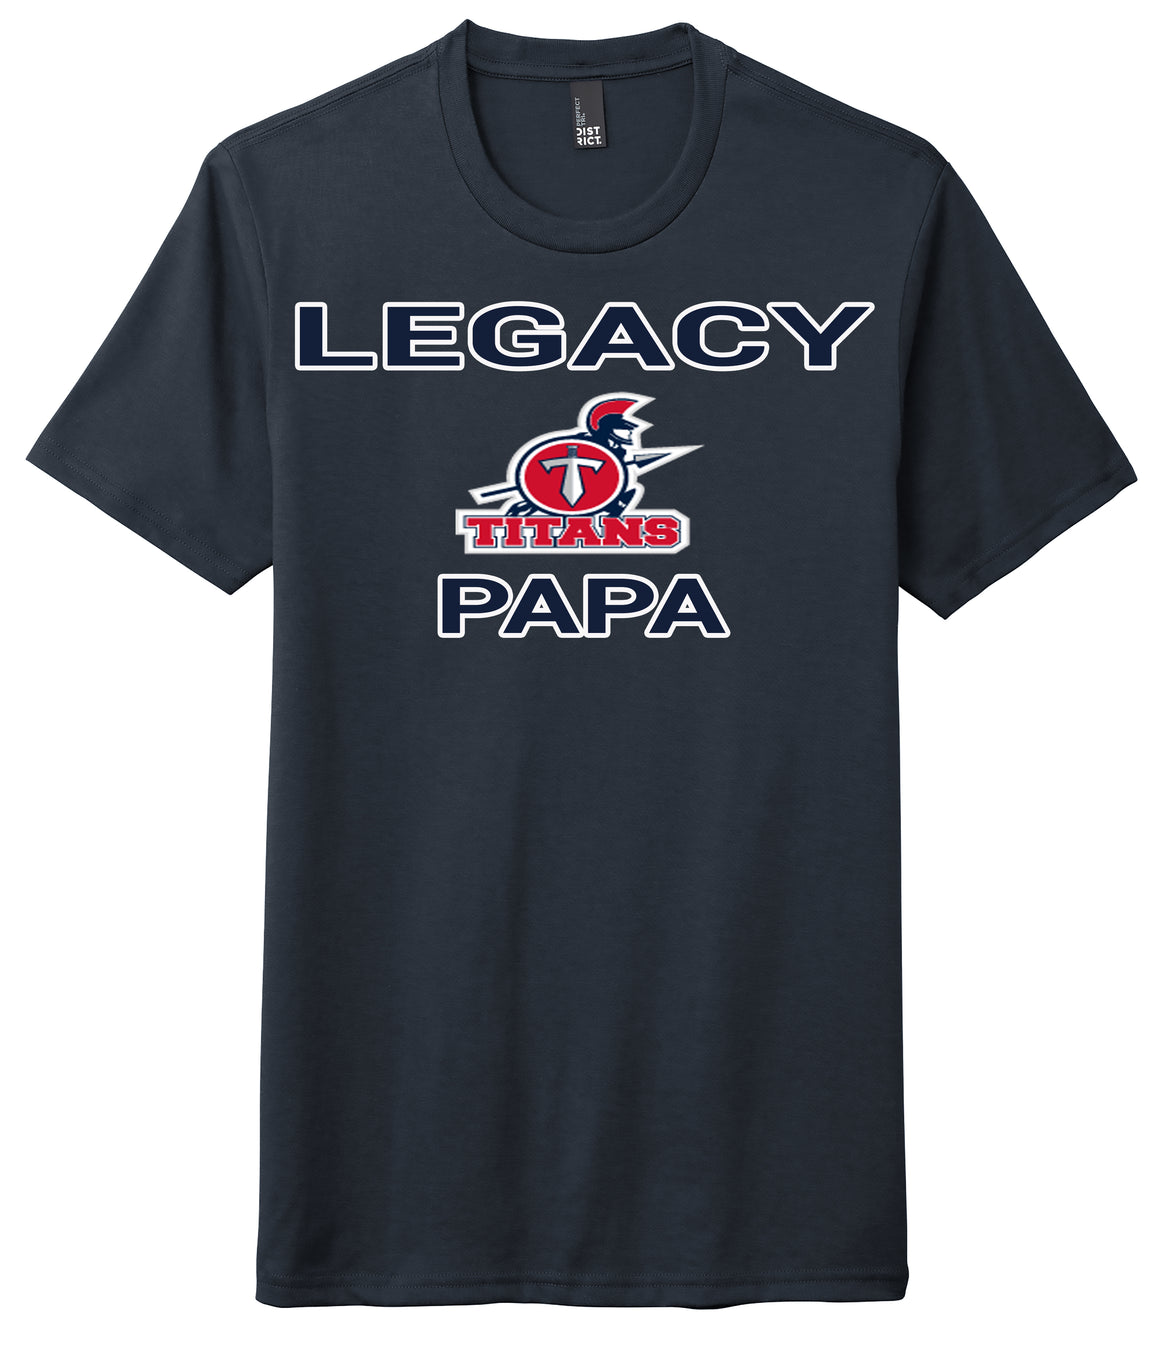 Legacy Traditional School Chandler - Papa Shirt